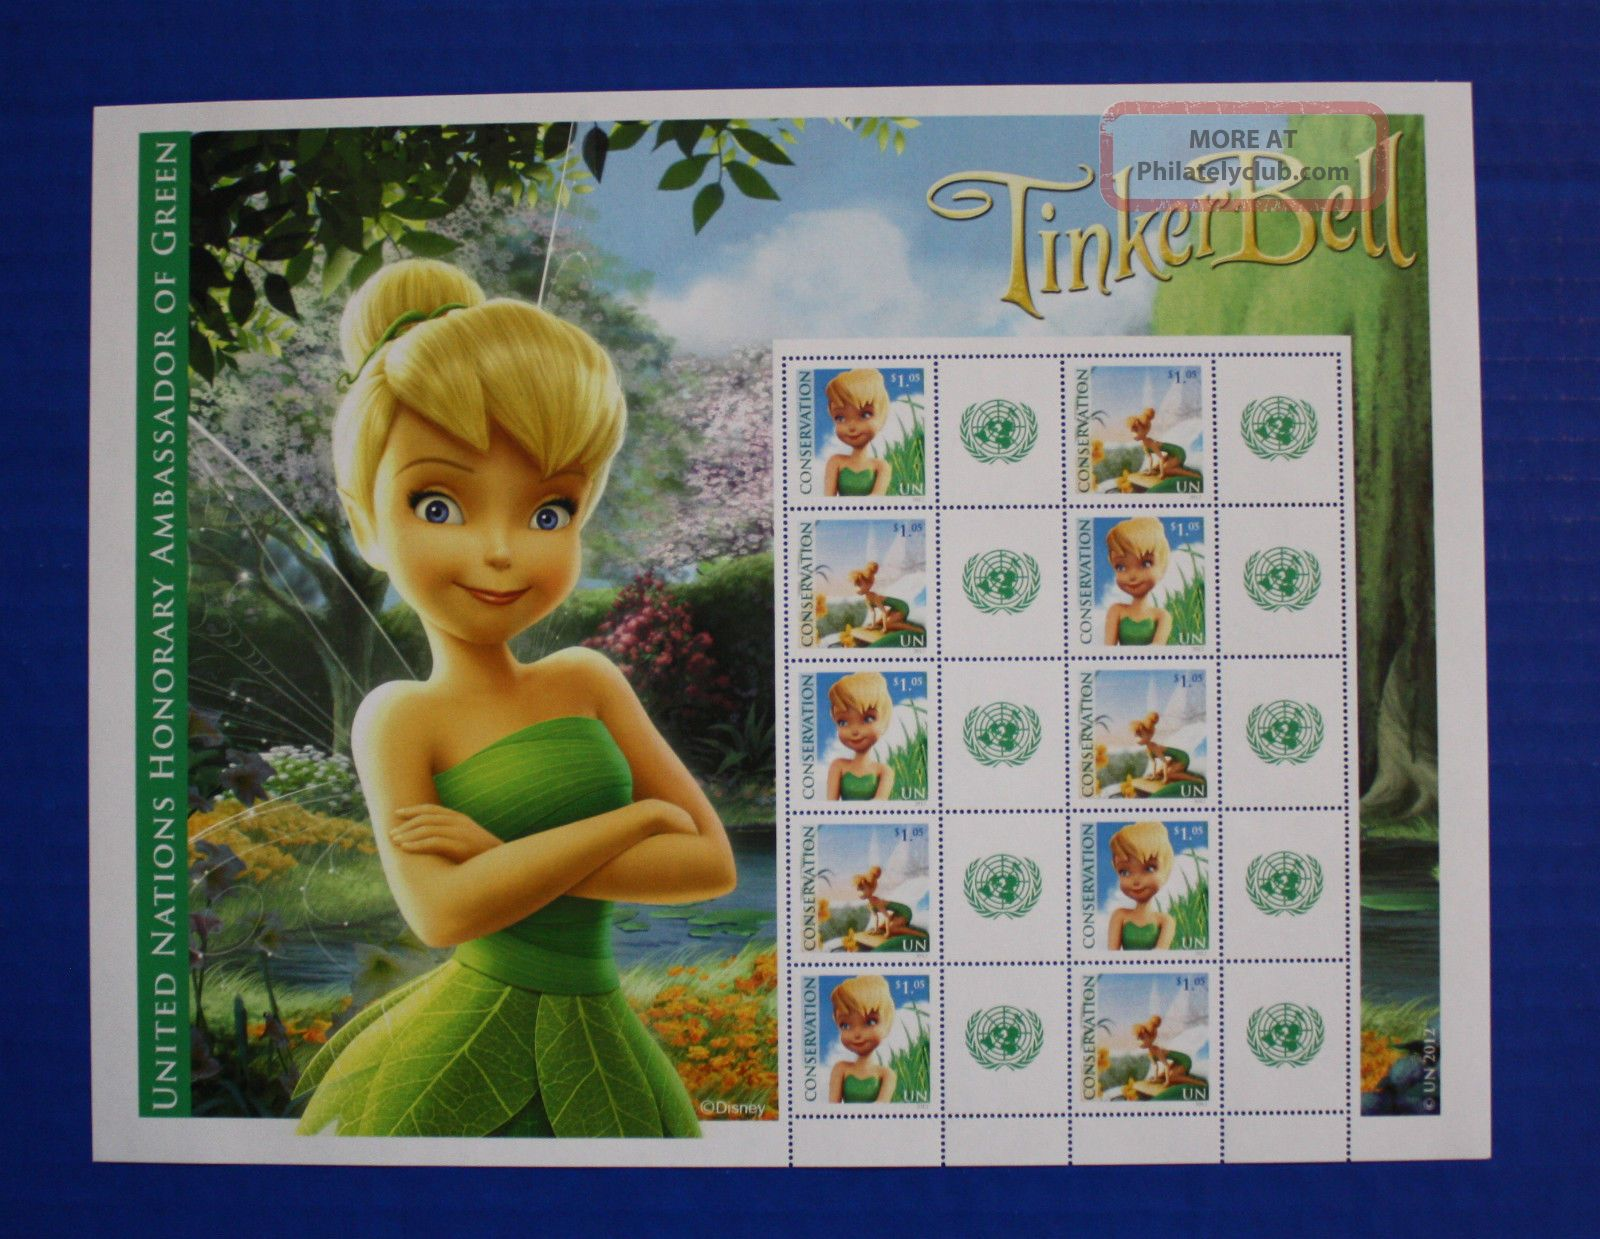 United Nations (s48) 2012 Tinker Bell Personalized Sheet Worldwide photo